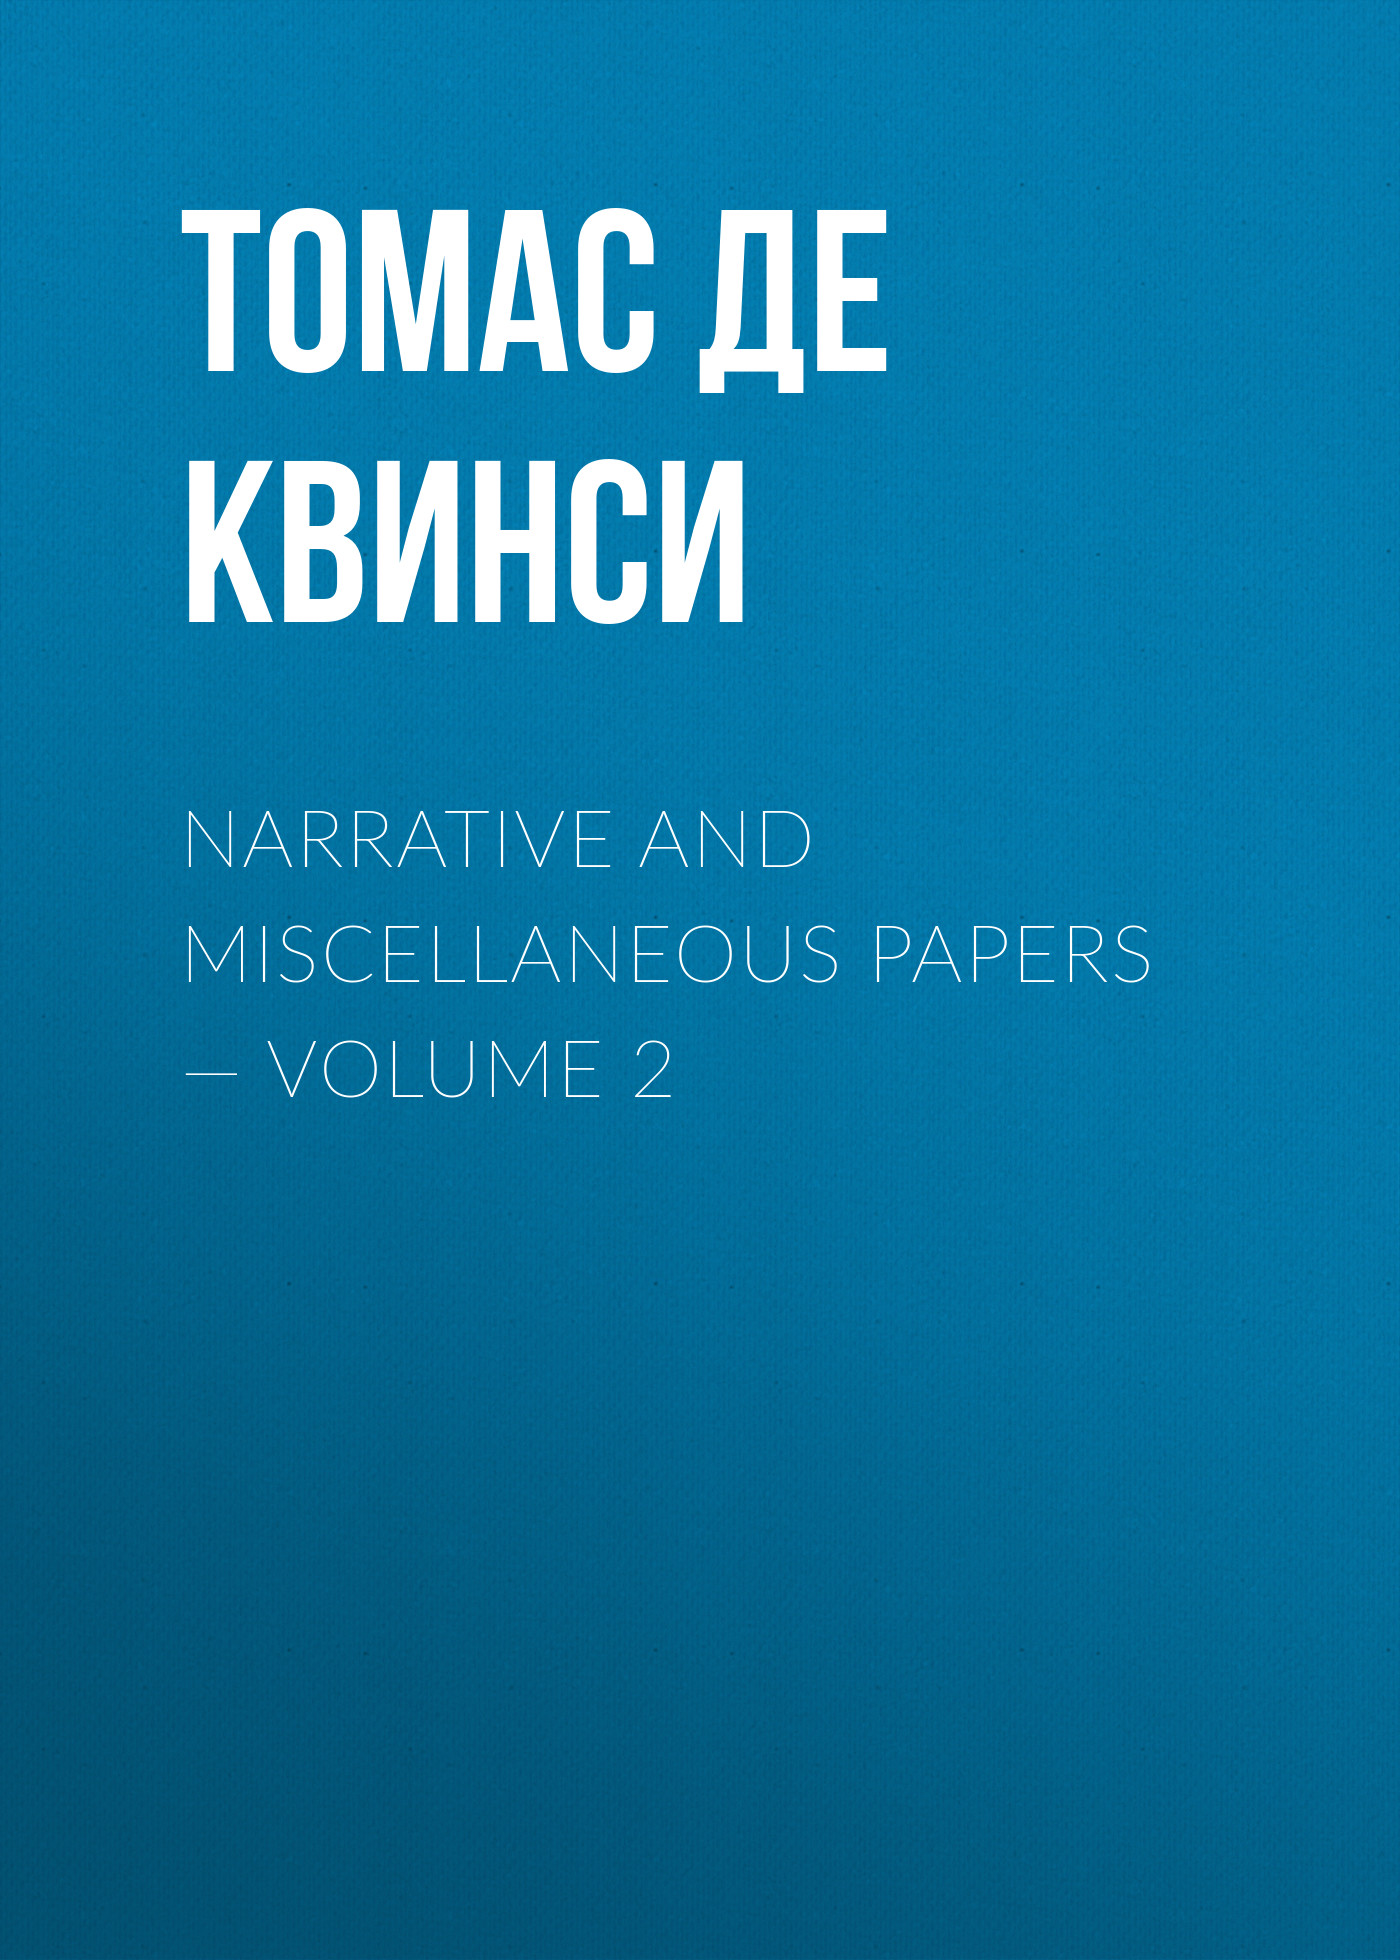 Фото - Томас де Квинси Narrative and Miscellaneous Papers — Volume 2 m l abbé trochon greek examination papers in miscellaneous grammar and idioms